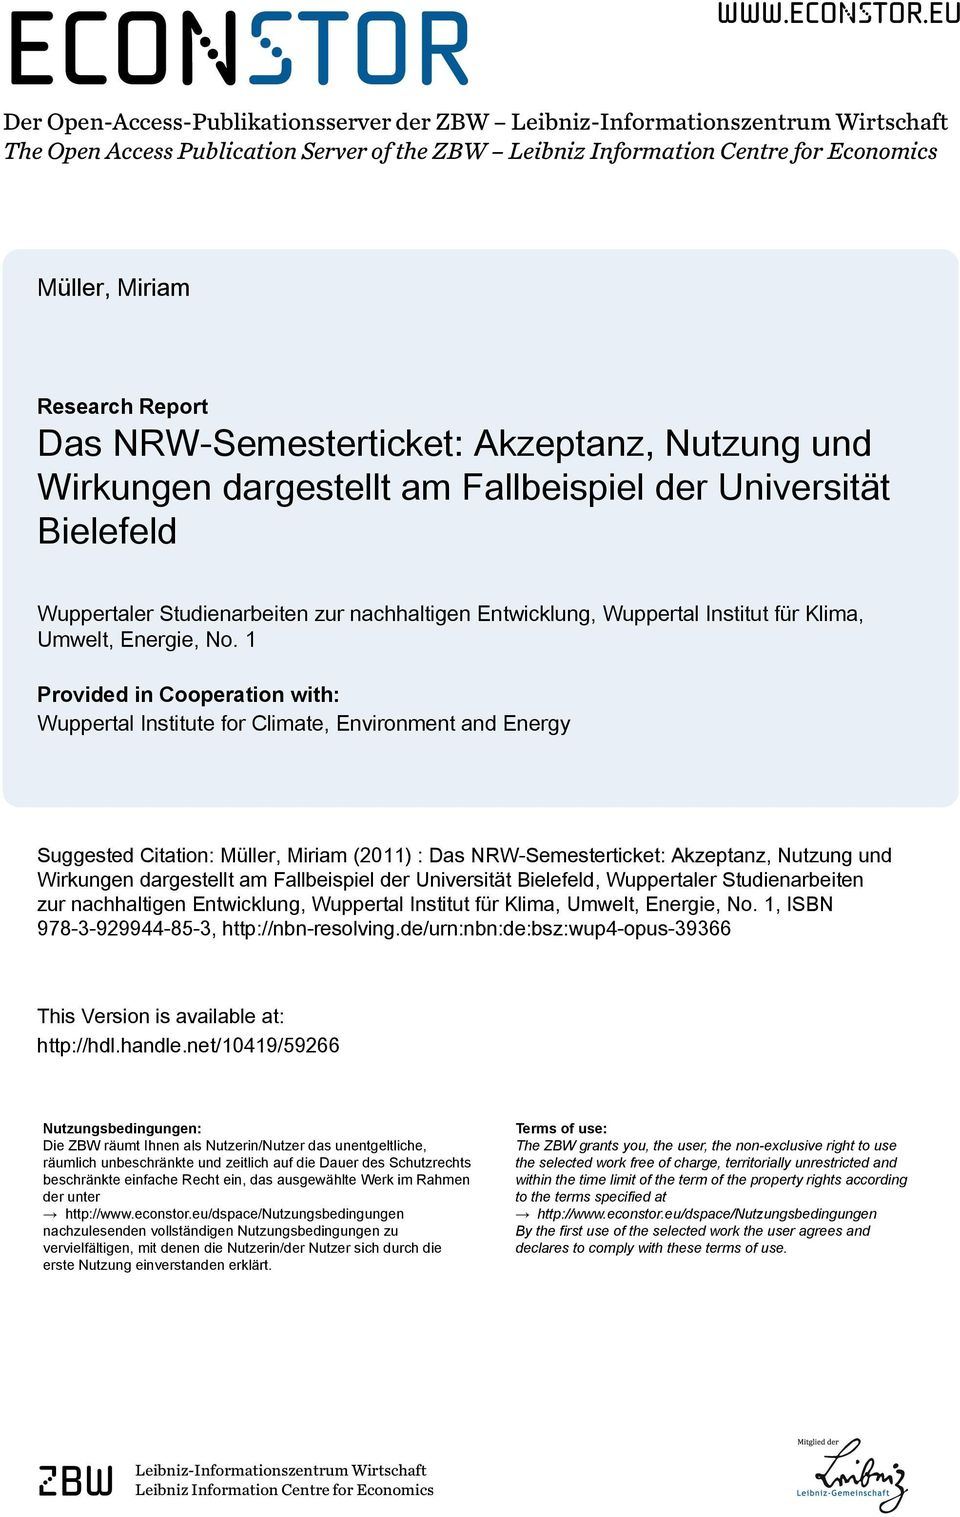 eu Der Open-Access-Publikationsserver der ZBW Leibniz-Informationszentrum Wirtschaft The Open Access Publication Server of the ZBW Leibniz Information Centre for Economics Müller, Miriam Research